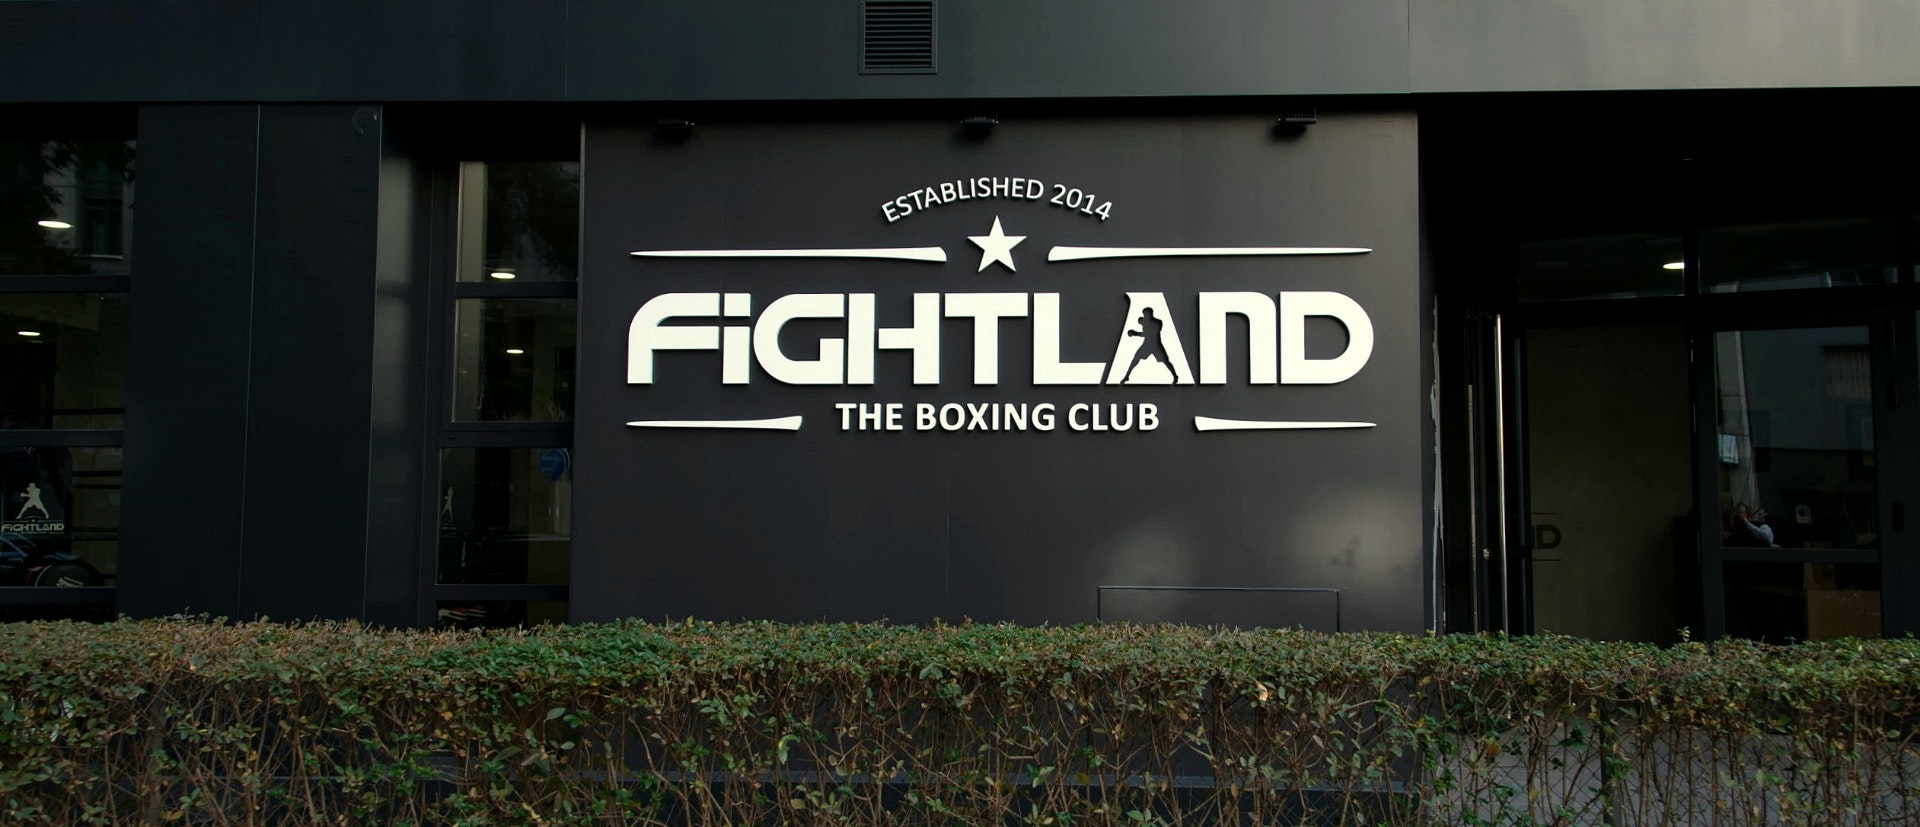 Fightland Sevilla